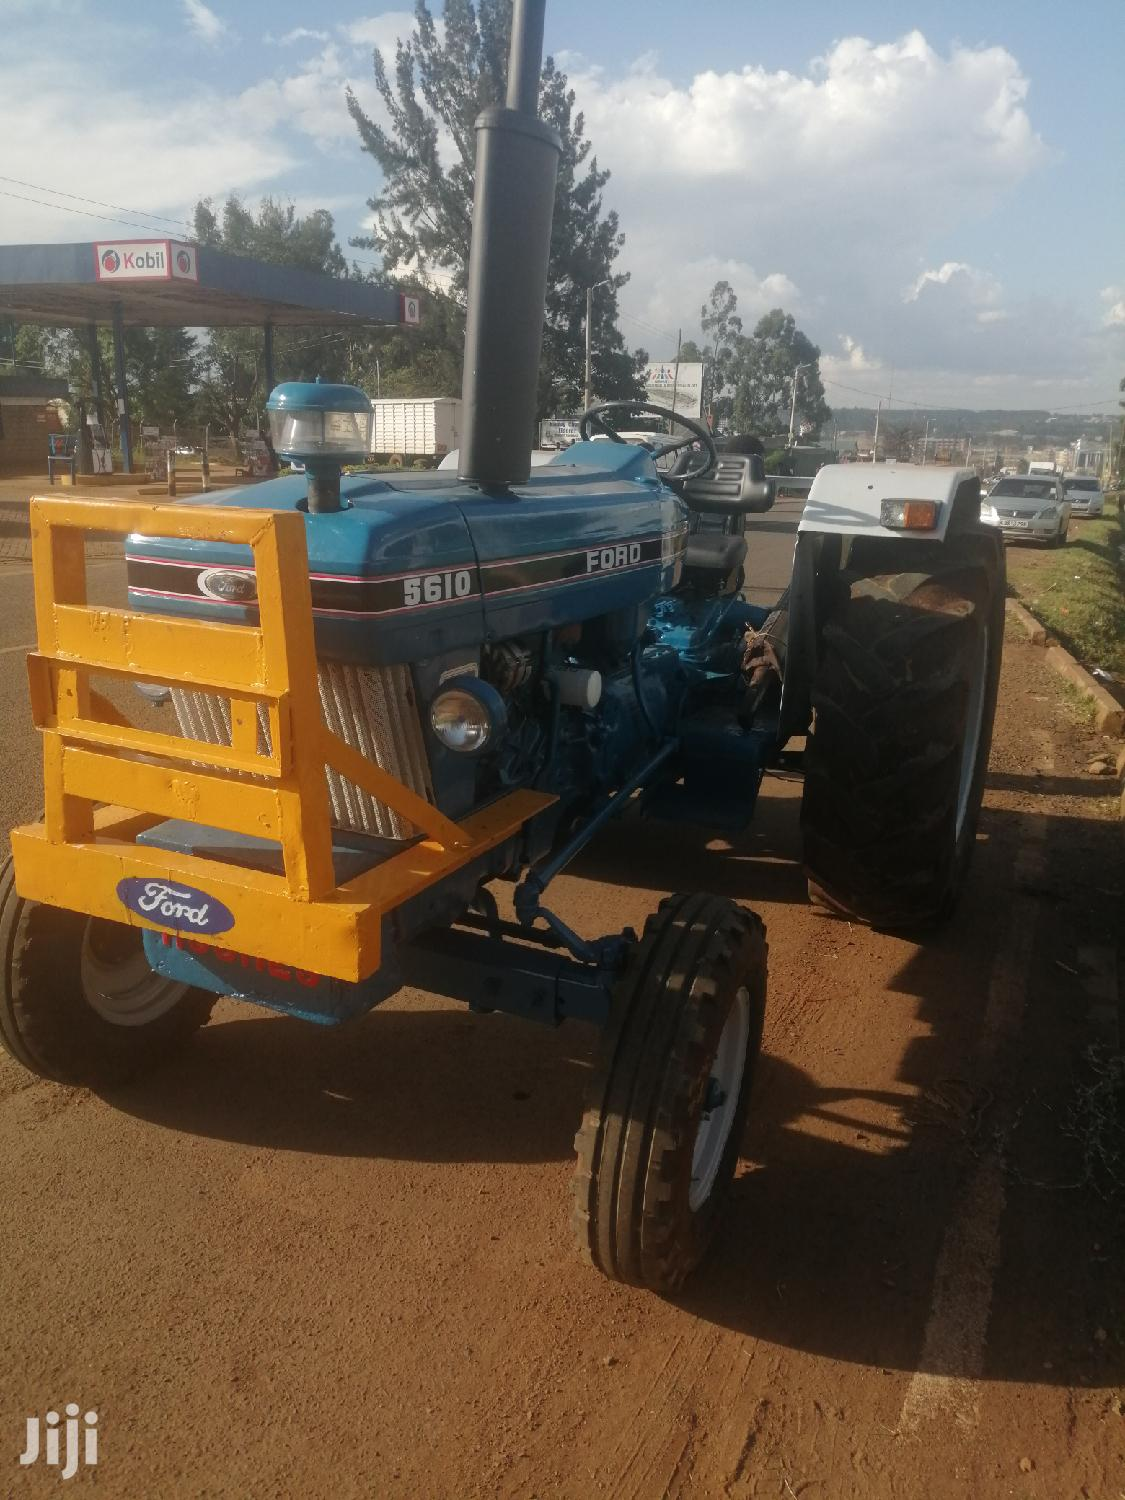 Archive: FORD 5610 Tractor